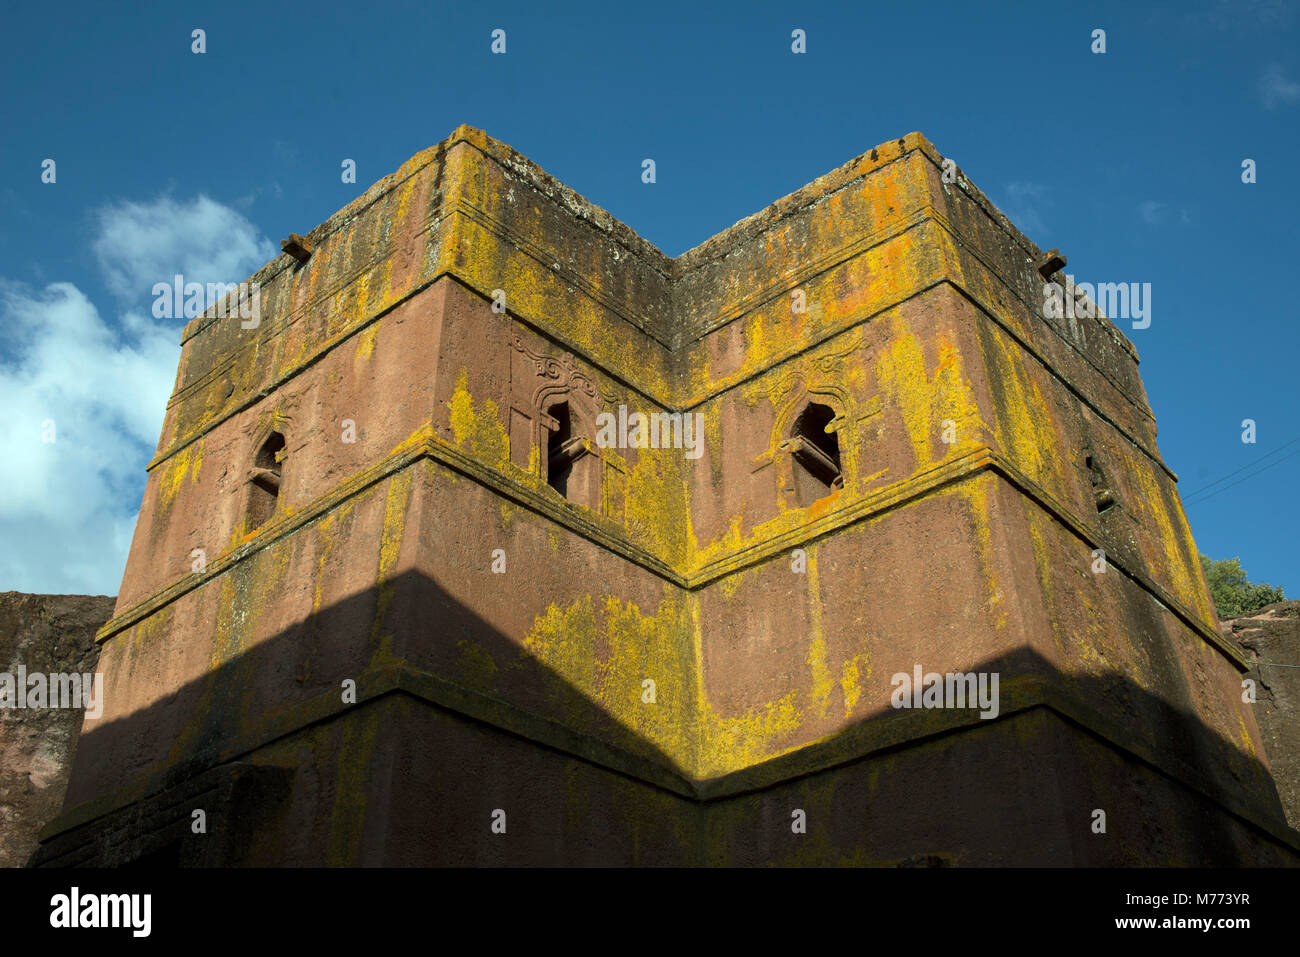 The Church of Saint George was the last of 11 rock-hewn churches built around 700 years ago in Lalibela, Ethiopia. - Stock Image